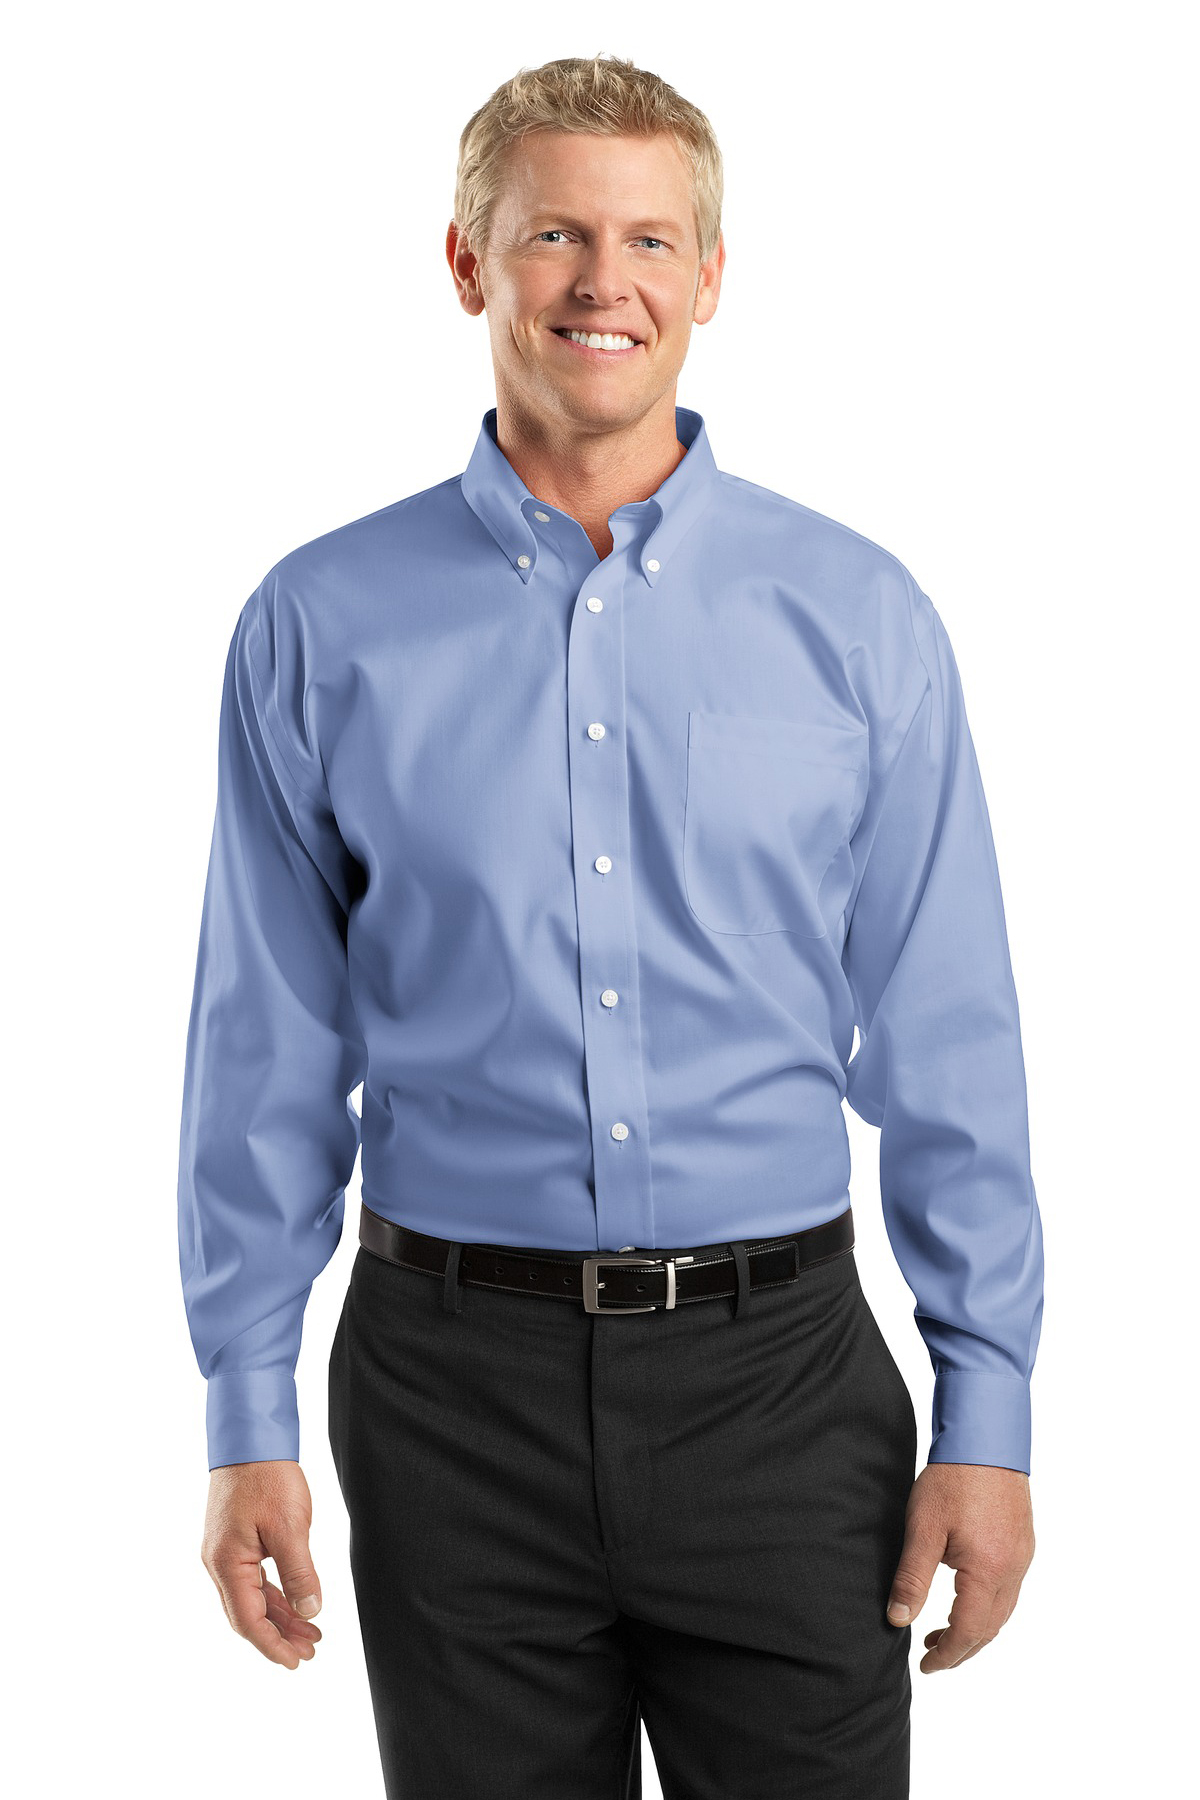 Woven-Shirts-Easy-Care-22